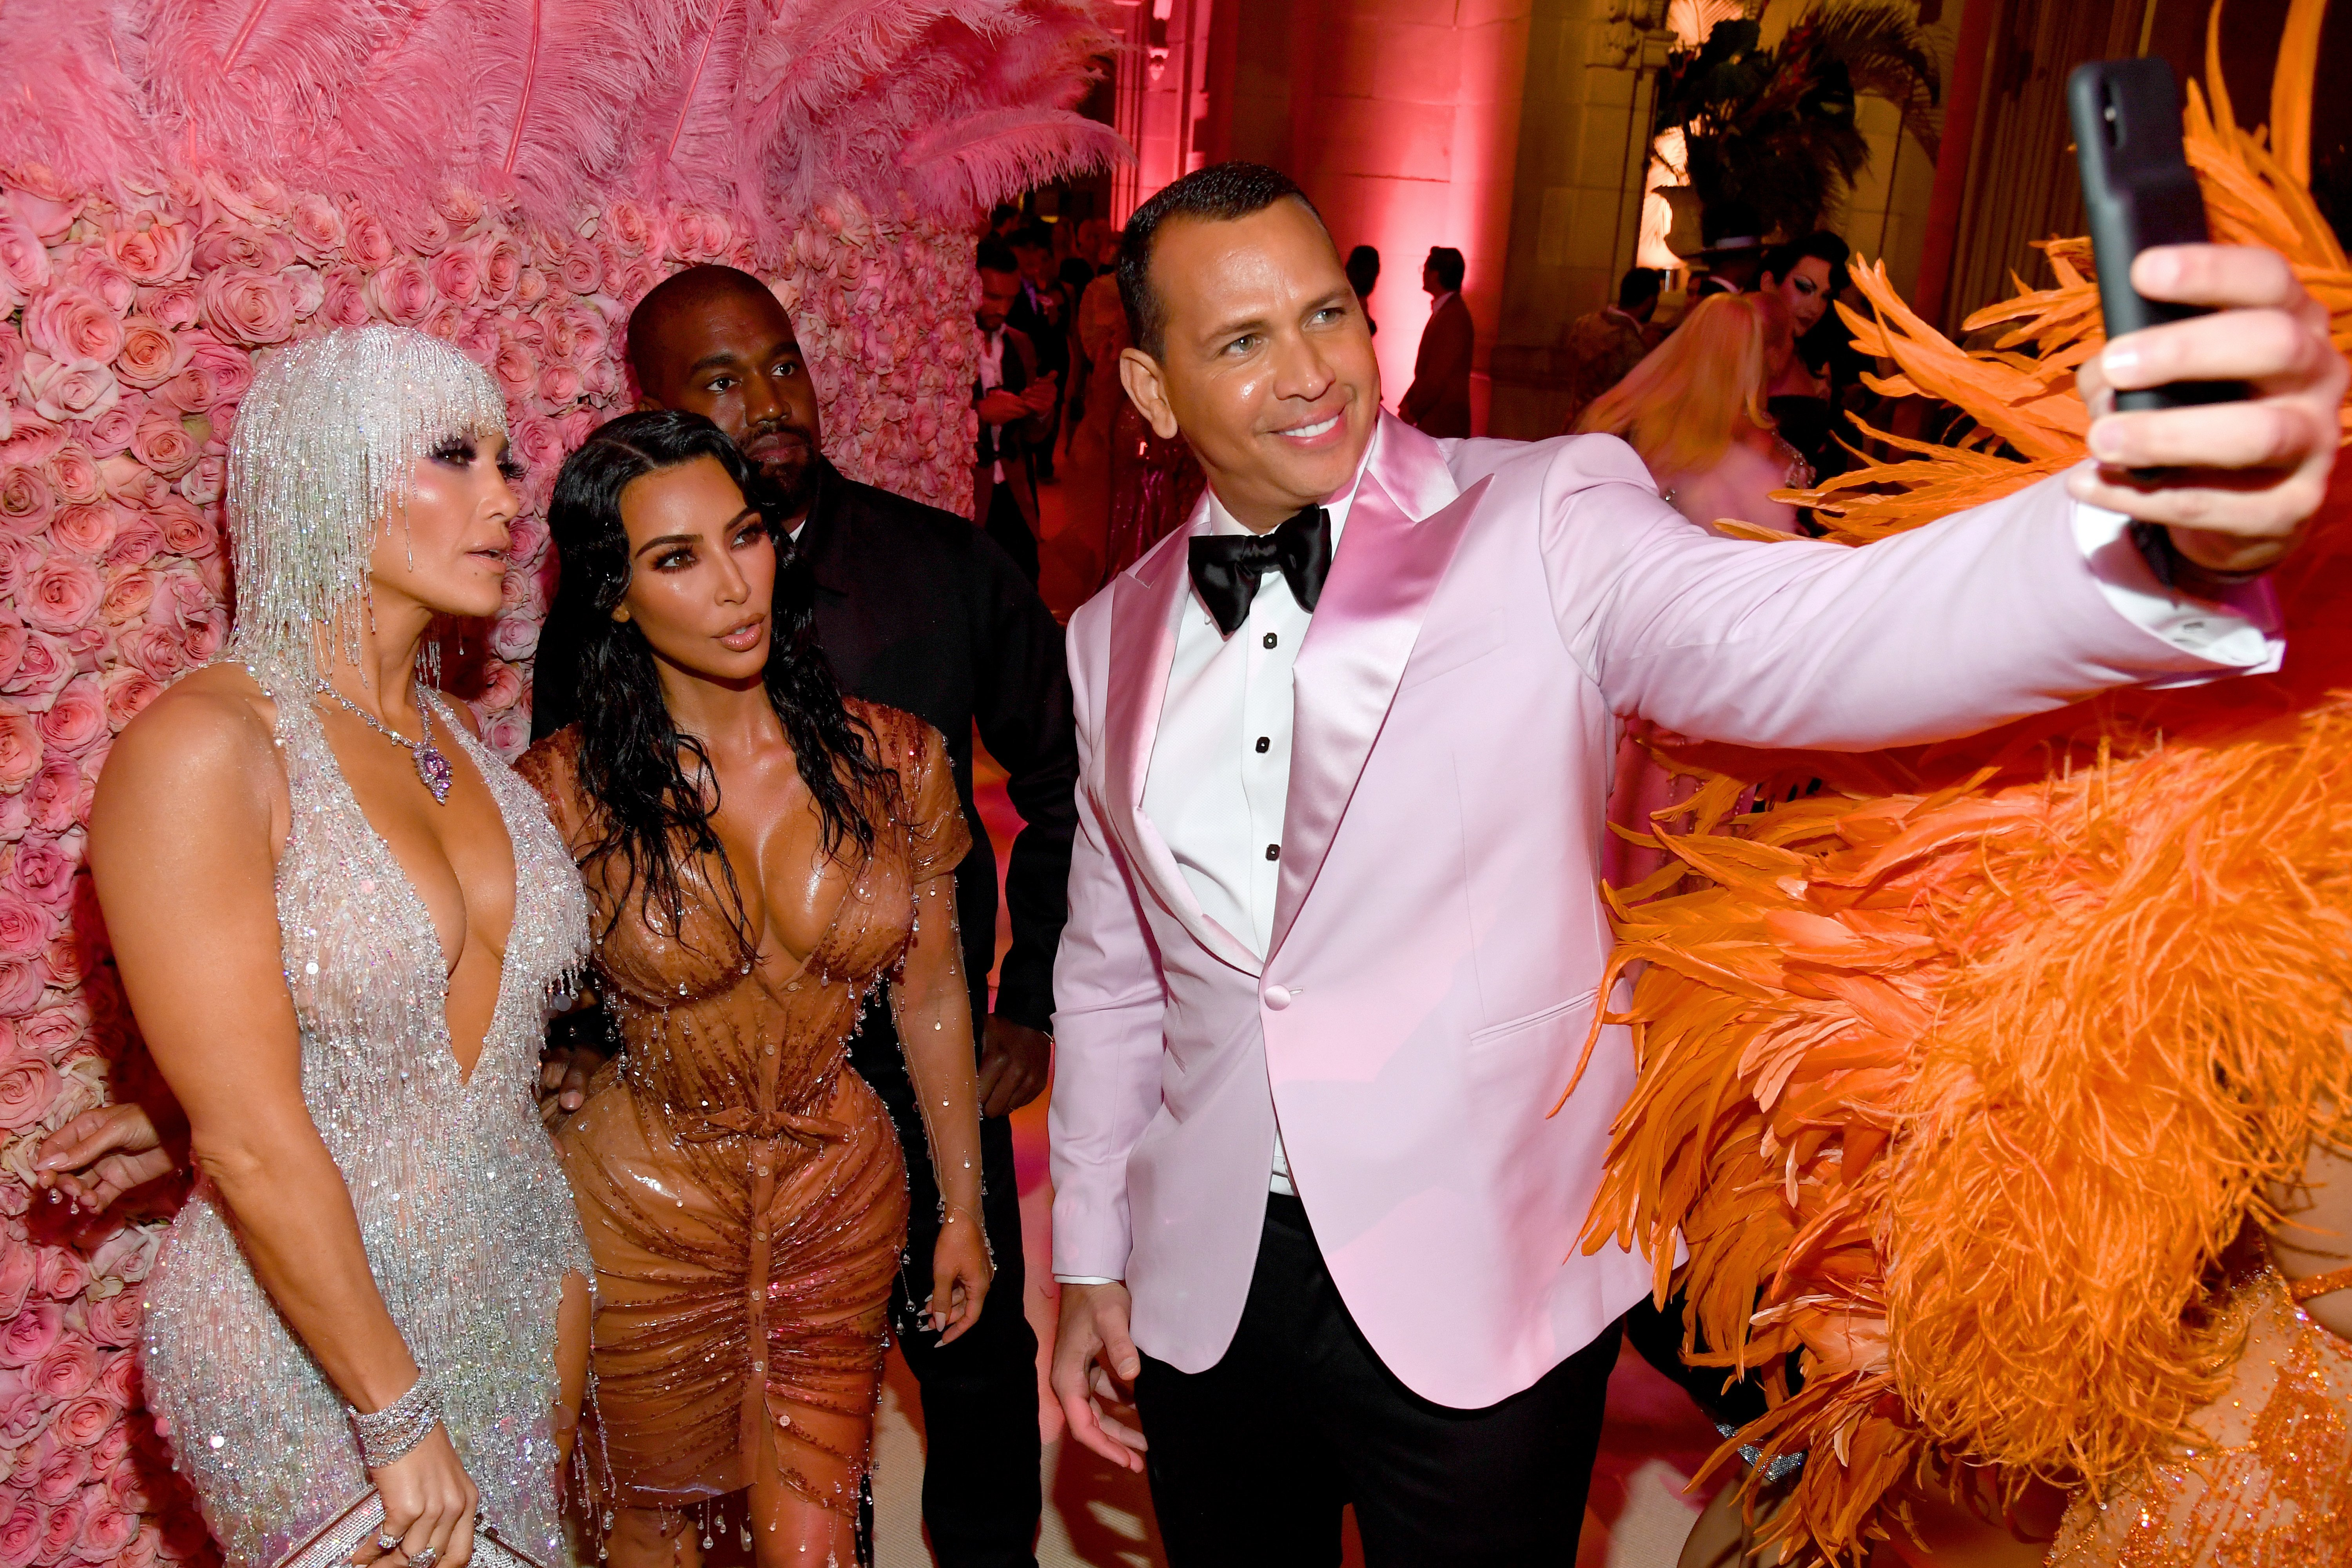 Kim Kardashian and Kanye West posing with Jennifer Lopez and Alex Rodriguez at the 2019 Met Gala | Photo: Getty Images